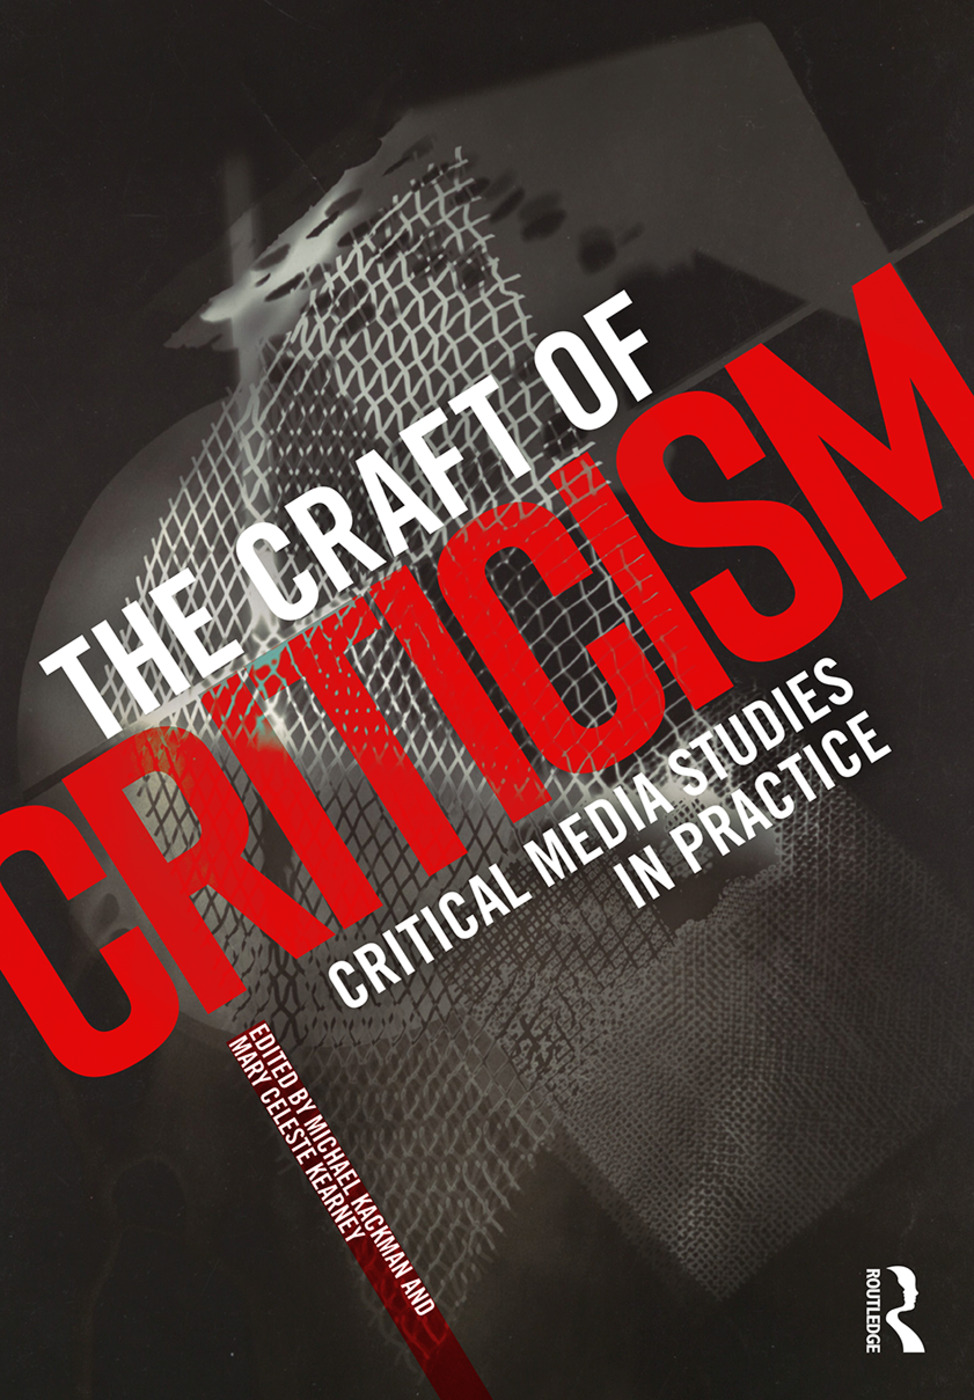 The Craft of Criticism: Critical Media Studies in Practice book cover